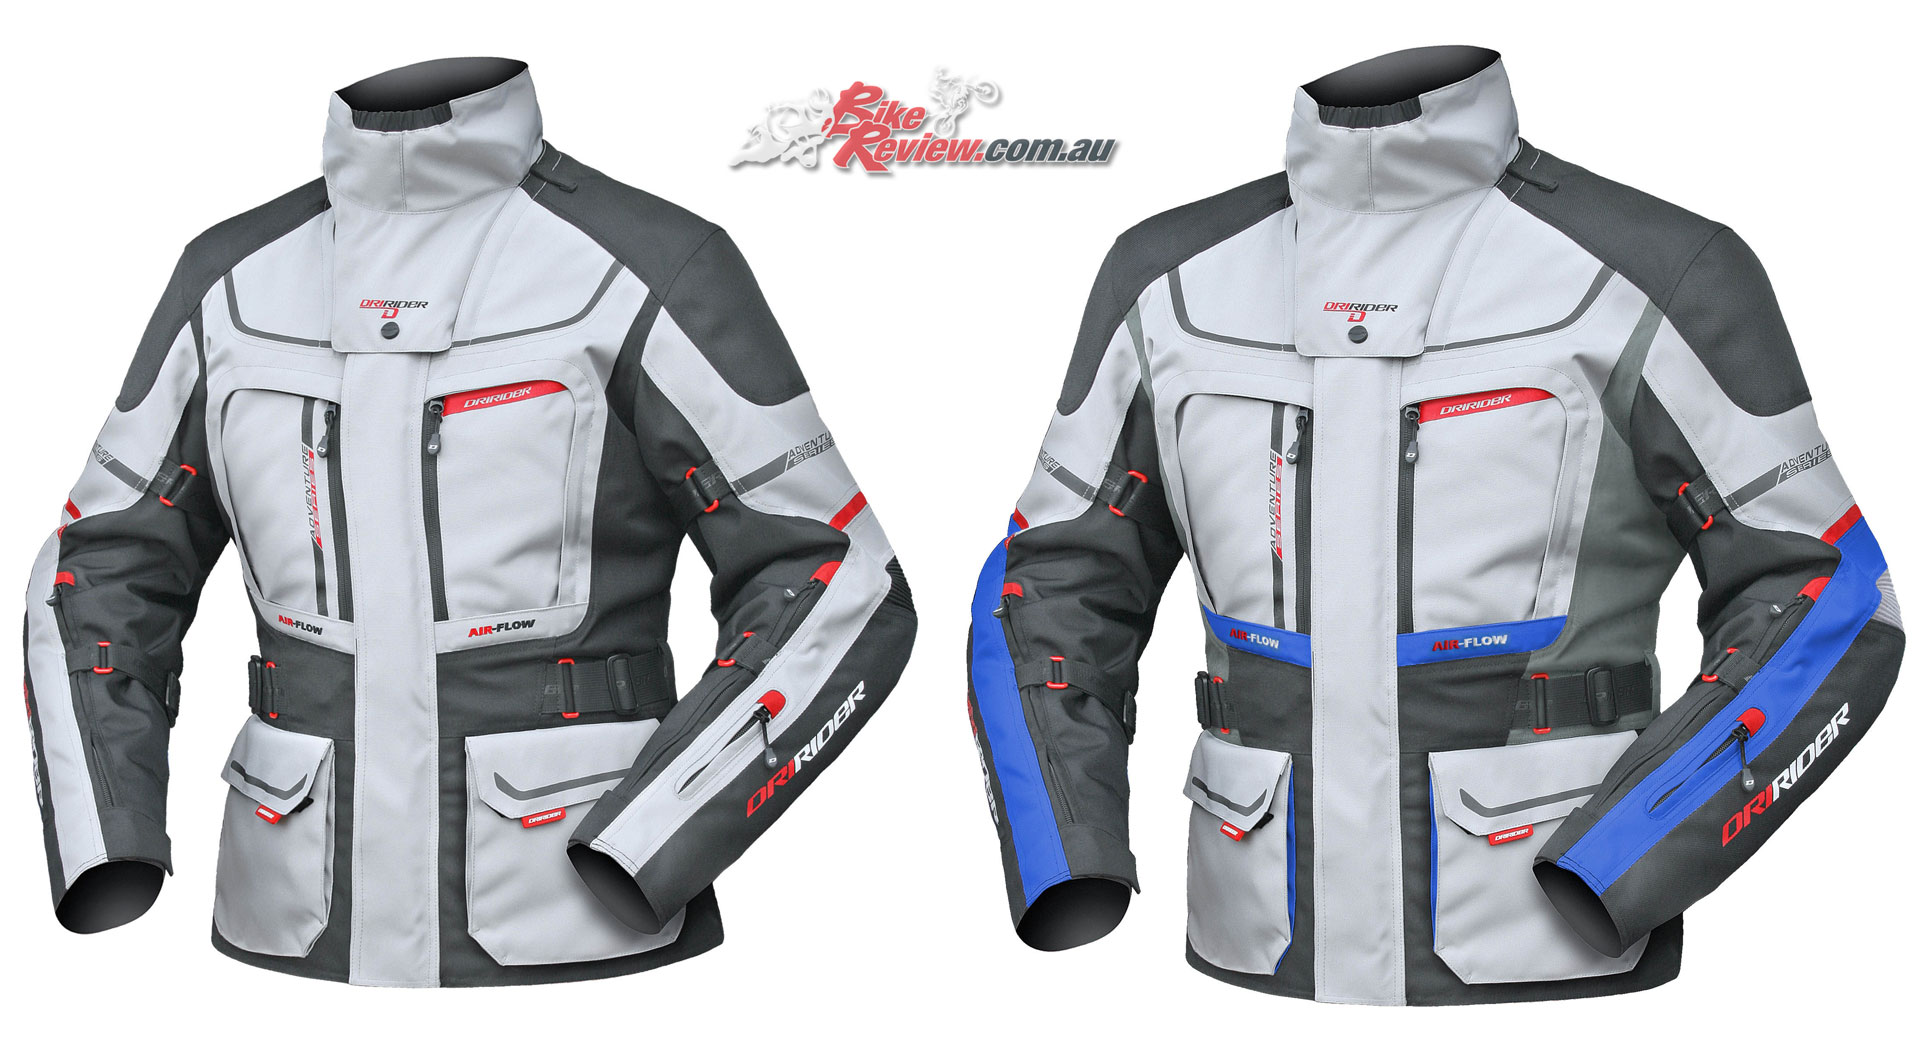 DriRider Vortex Adventure 2 Jacket (Ladies left, men's right)